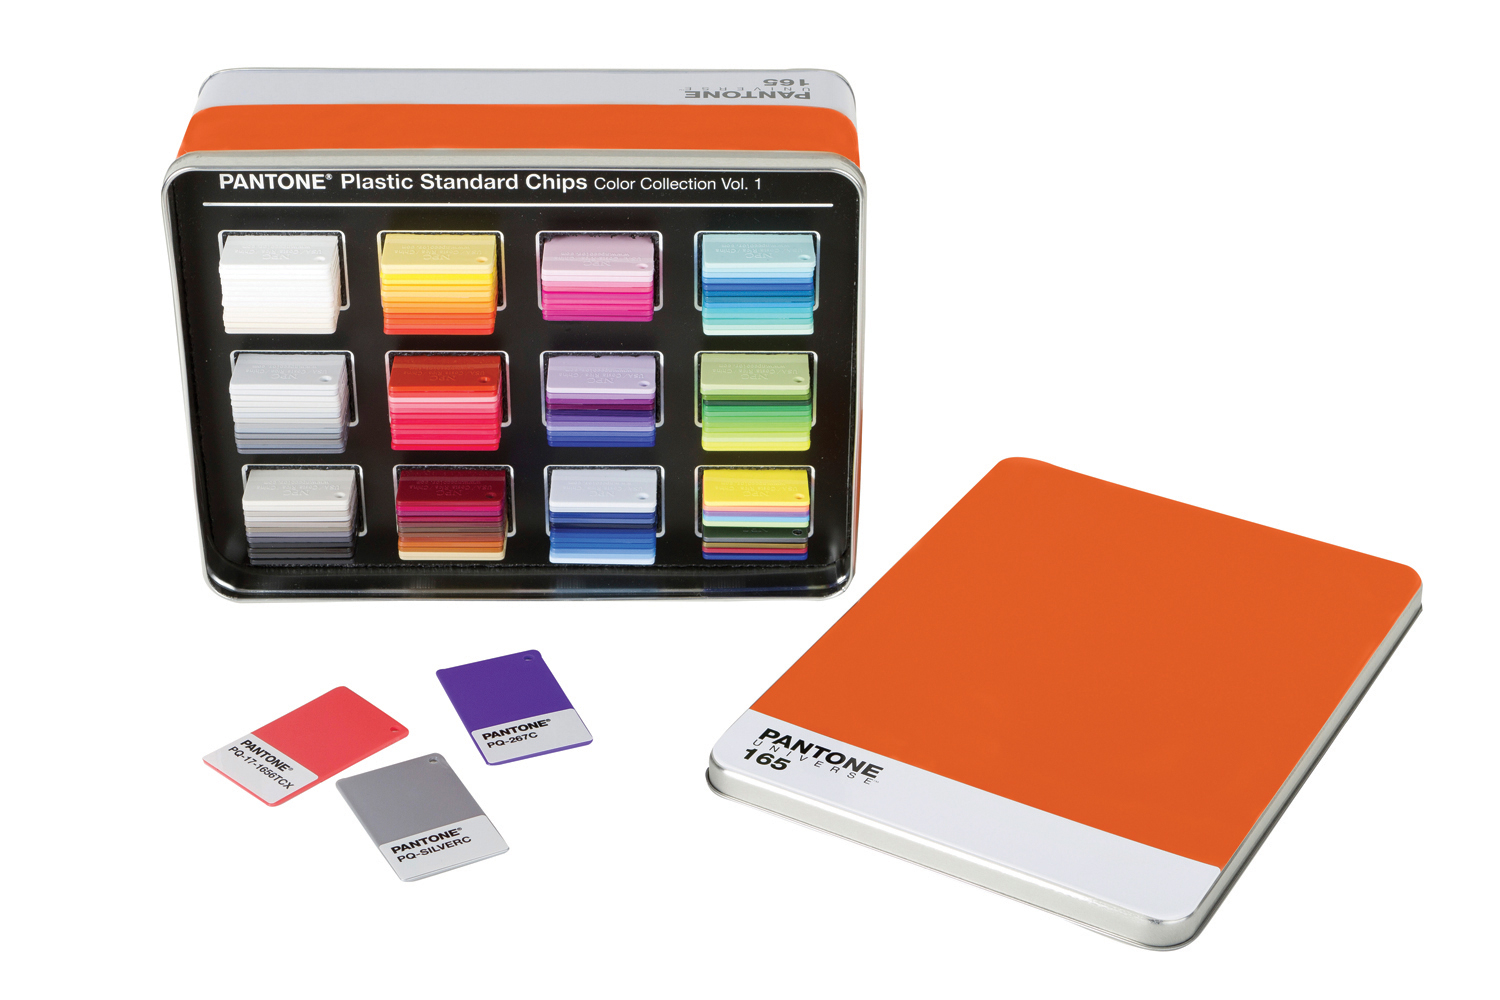 Pantone Plastic Standard Vol 1 Collection